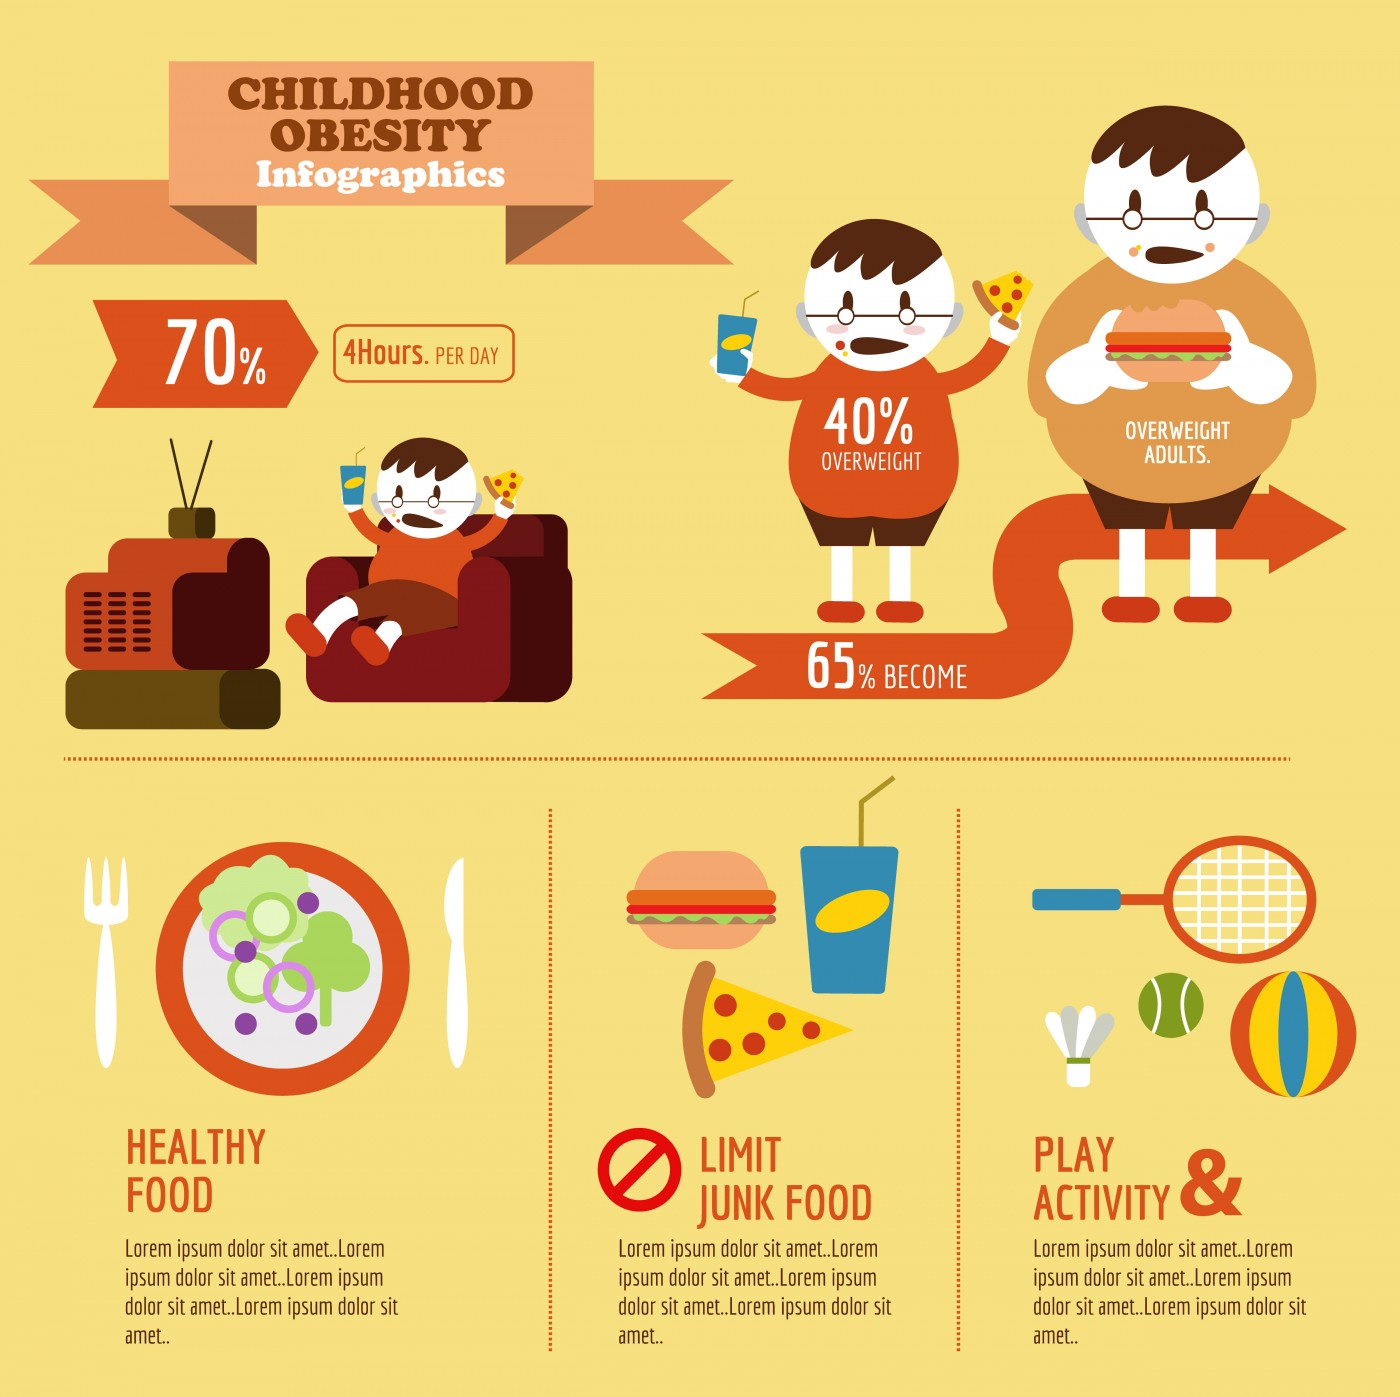 New Study Focuses on Children's Obesity Hallmarks and Proposes New Anti-Obesity Strategies